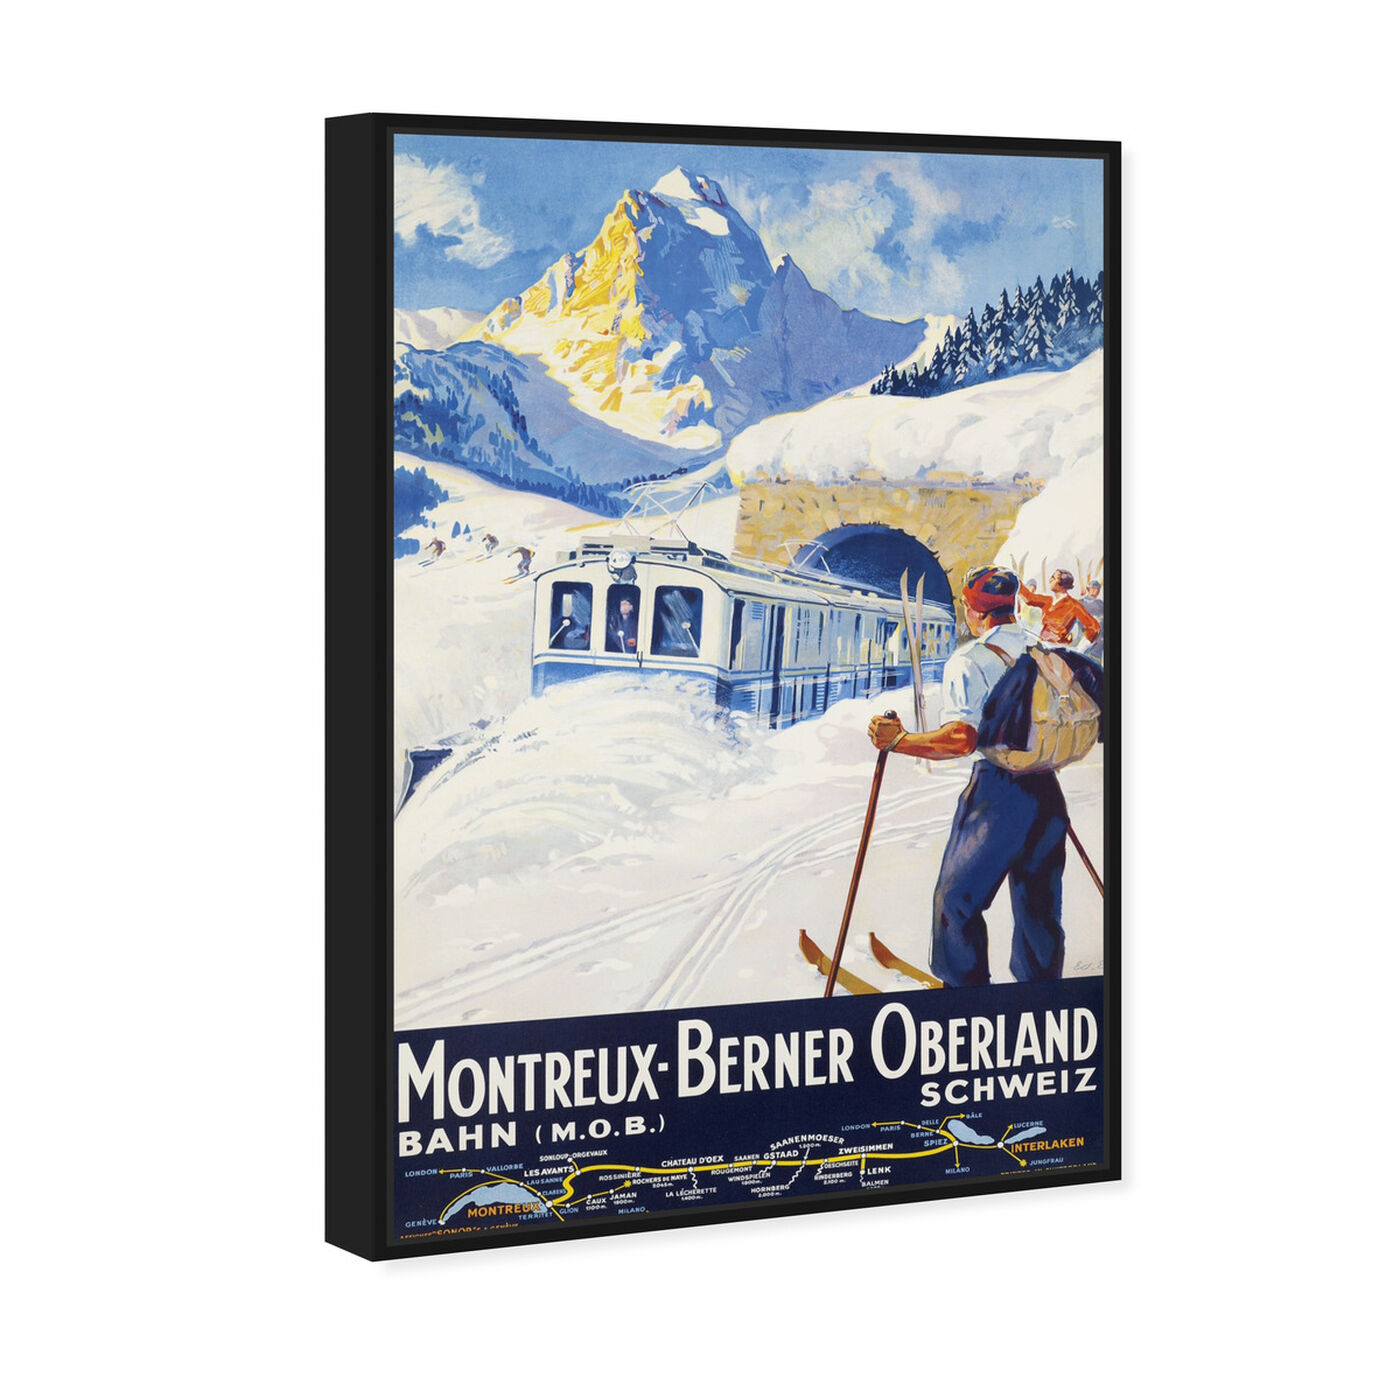 Angled view of Montreux-Berner featuring sports and teams and skiing art.